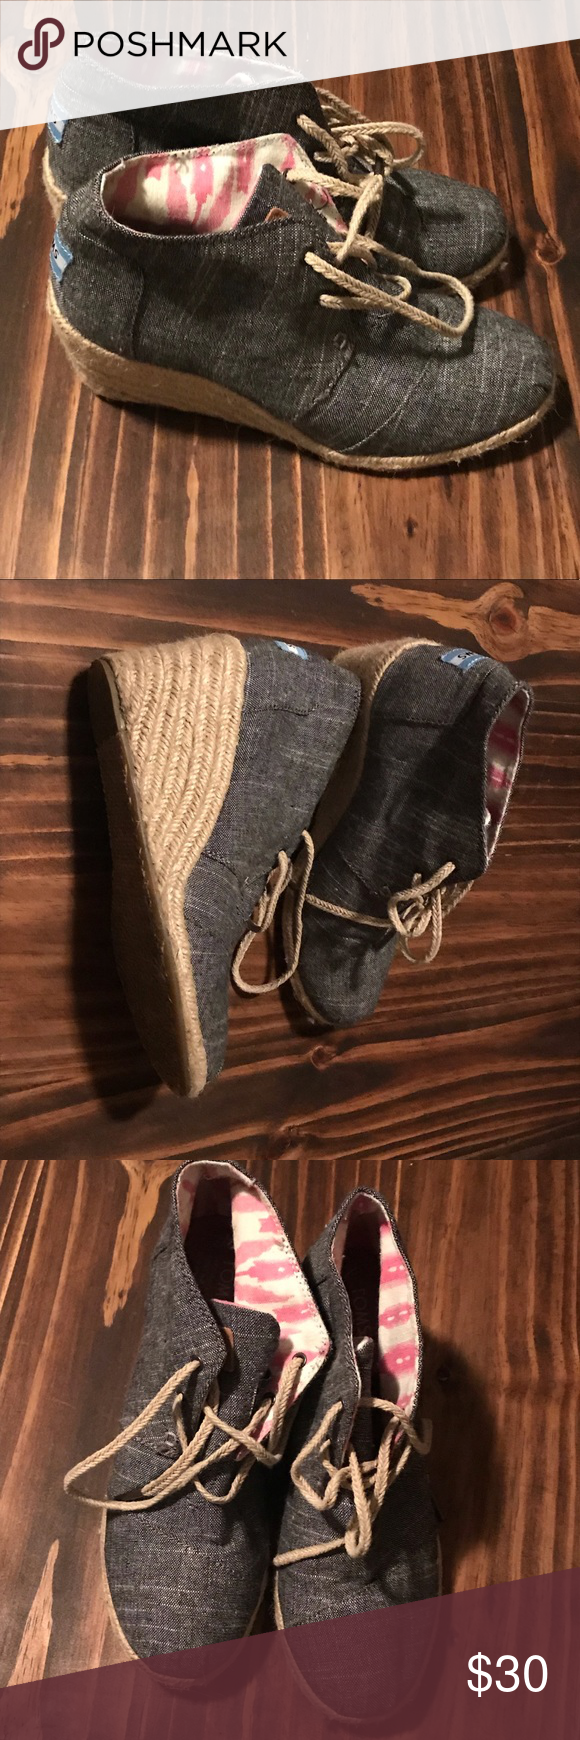 Women's size 7 Toms wedges. Women's size 7 Toms wedges. Smoke free home. The real shoes are little lighter color in person. Toms Shoes Wedges #tomwedges Women's size 7 Toms wedges. Women's size 7 Toms wedges. Smoke free home. The real shoes are little lighter color in person. Toms Shoes Wedges #tomwedges